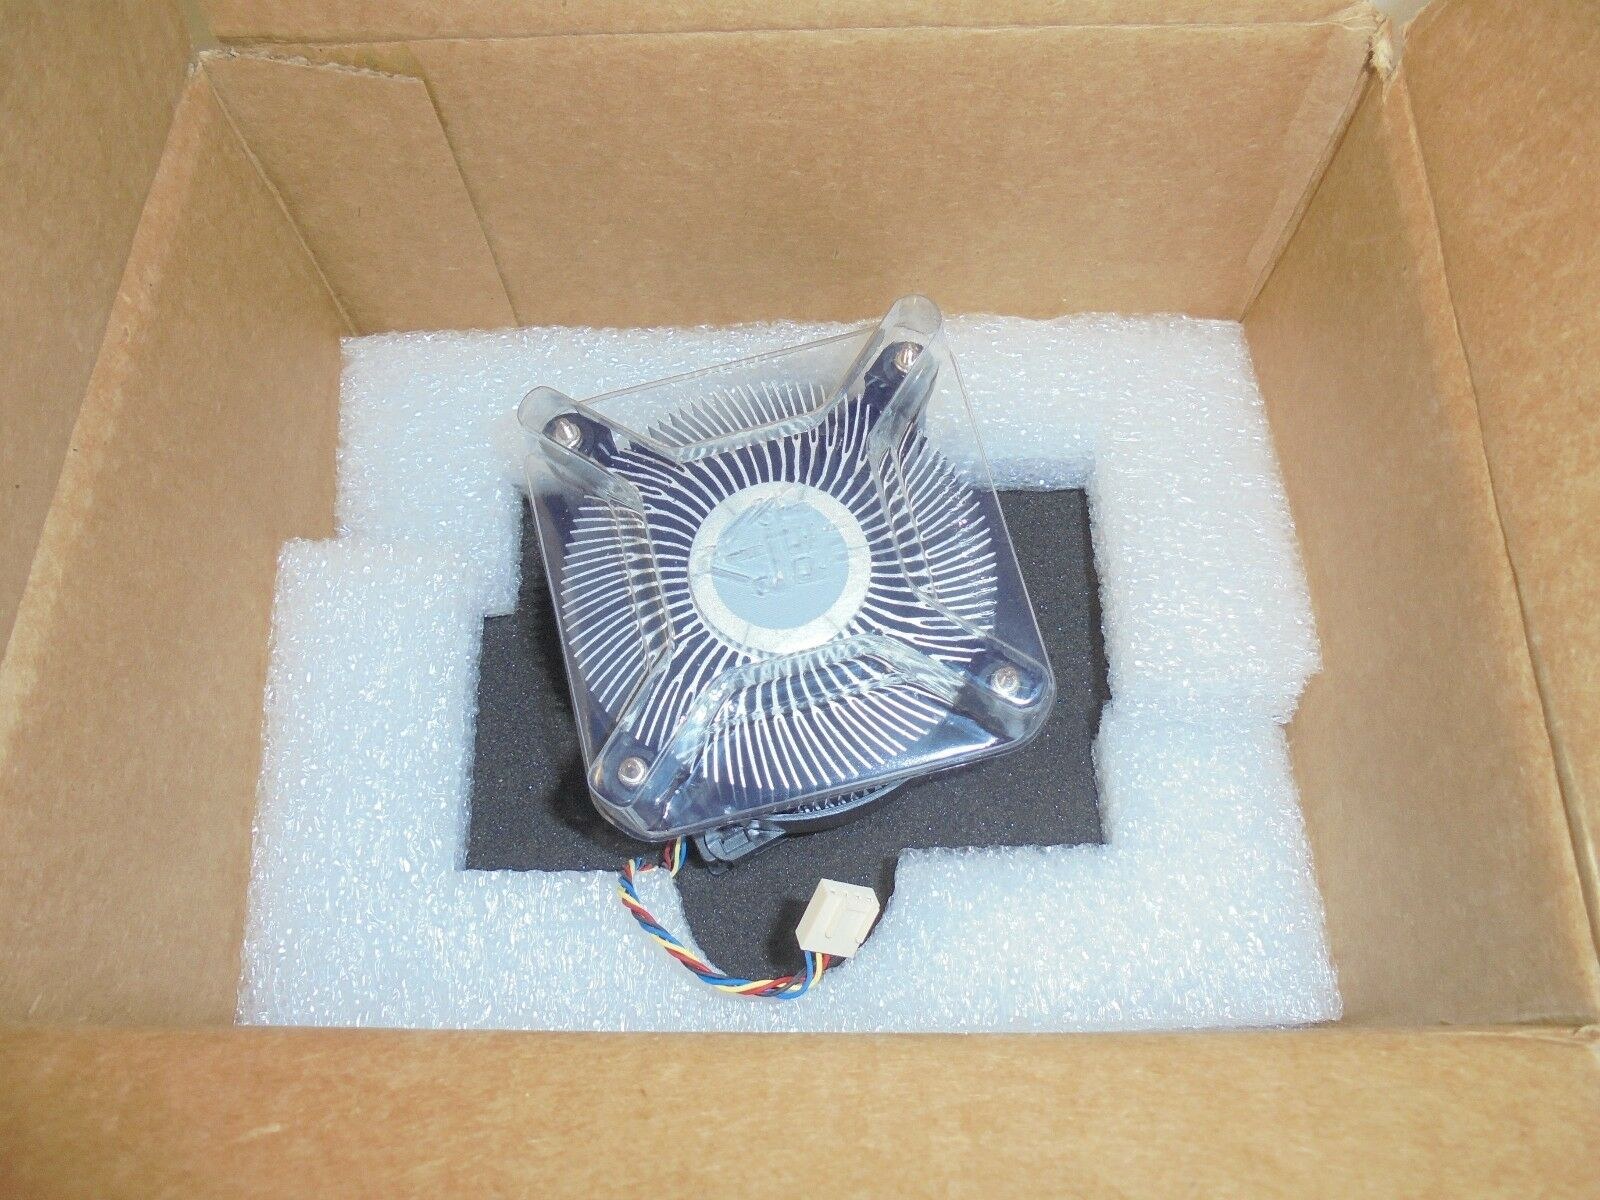 New Genuine Dell Inspiron 530 530S Computer Cpu Cooling Fan